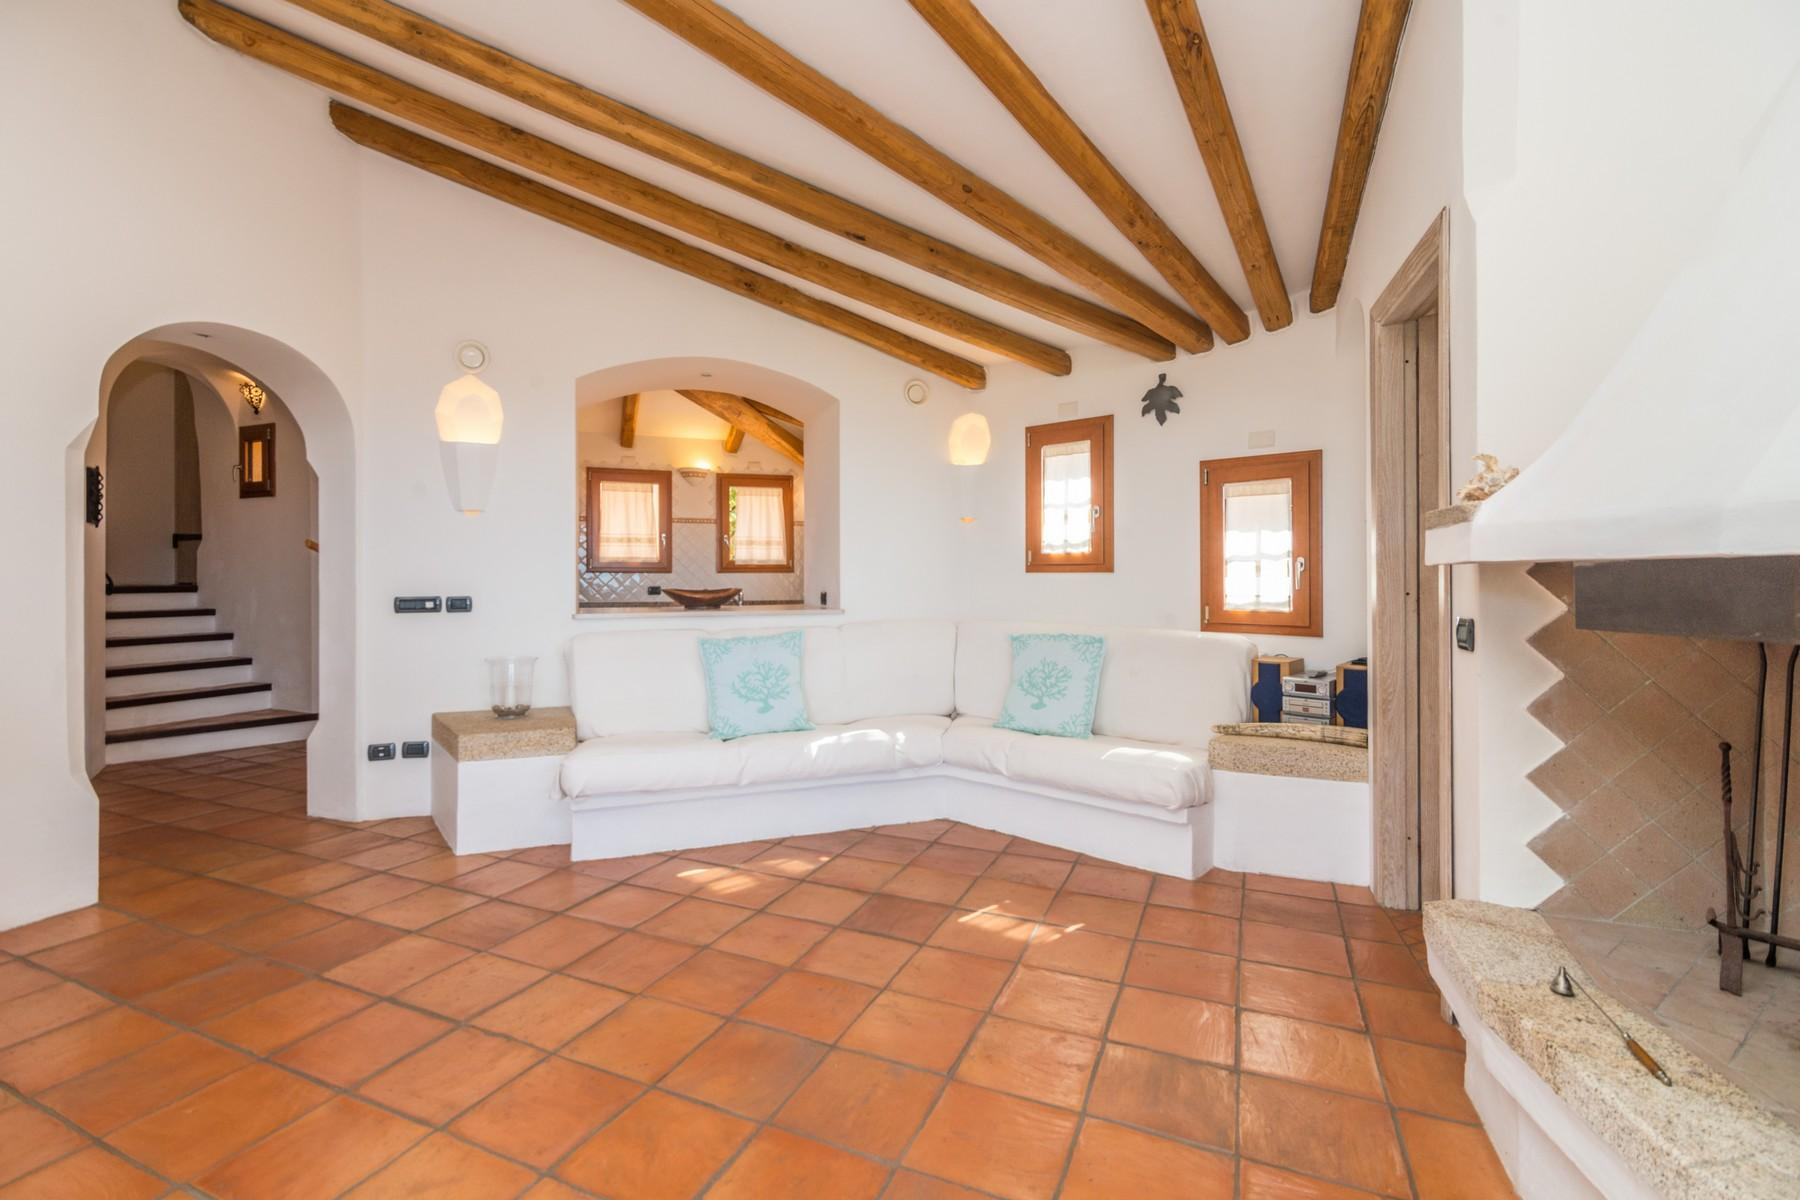 Porto Cervo Abbiadori Beautiful semi-detached villa with sea view - 12